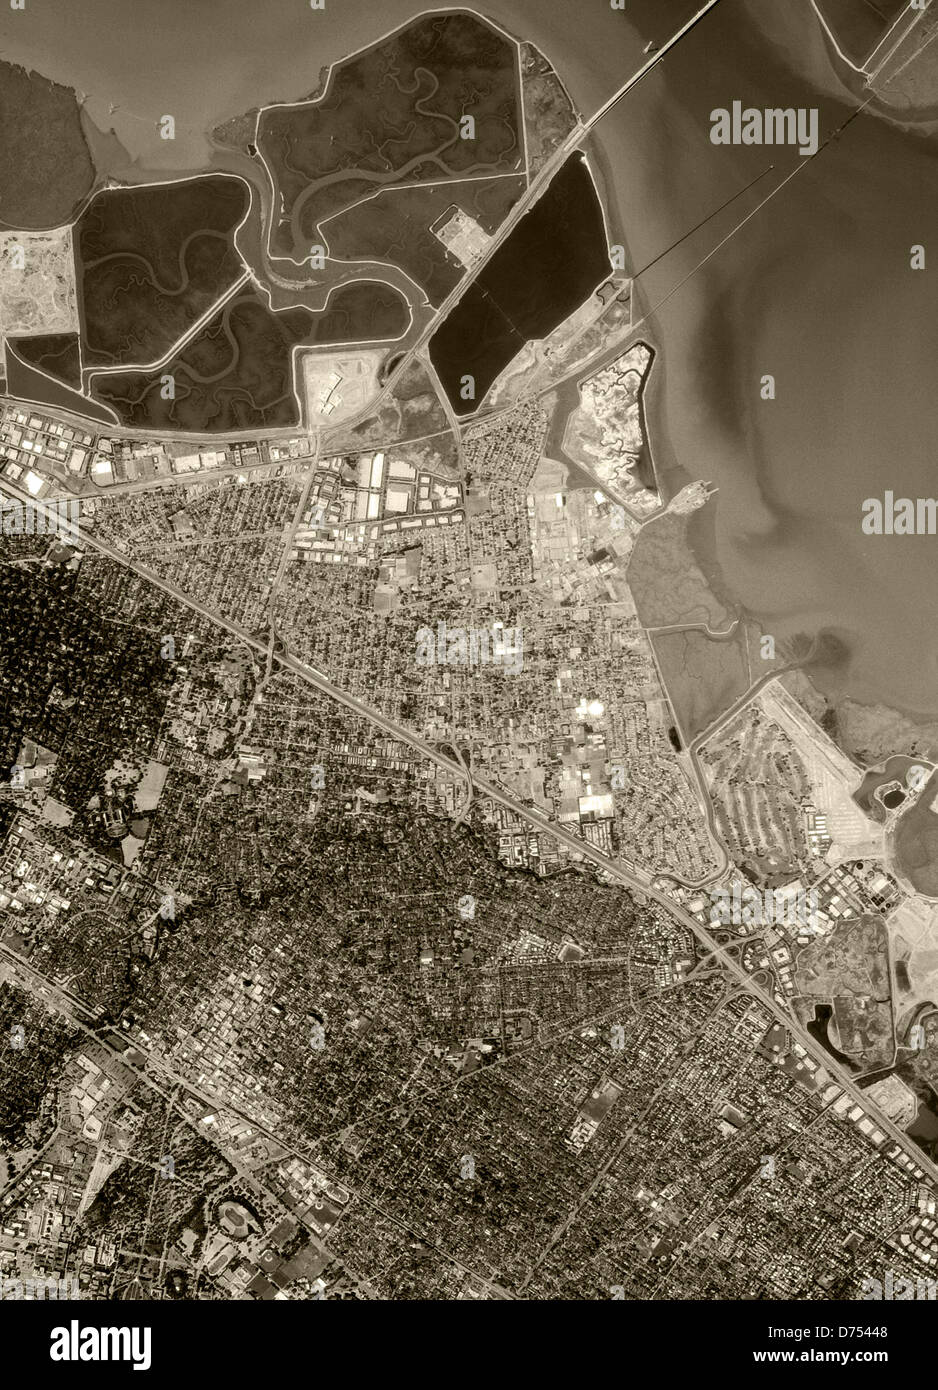 historical aerial photograph Palo Alto, California 1993 - Stock Image